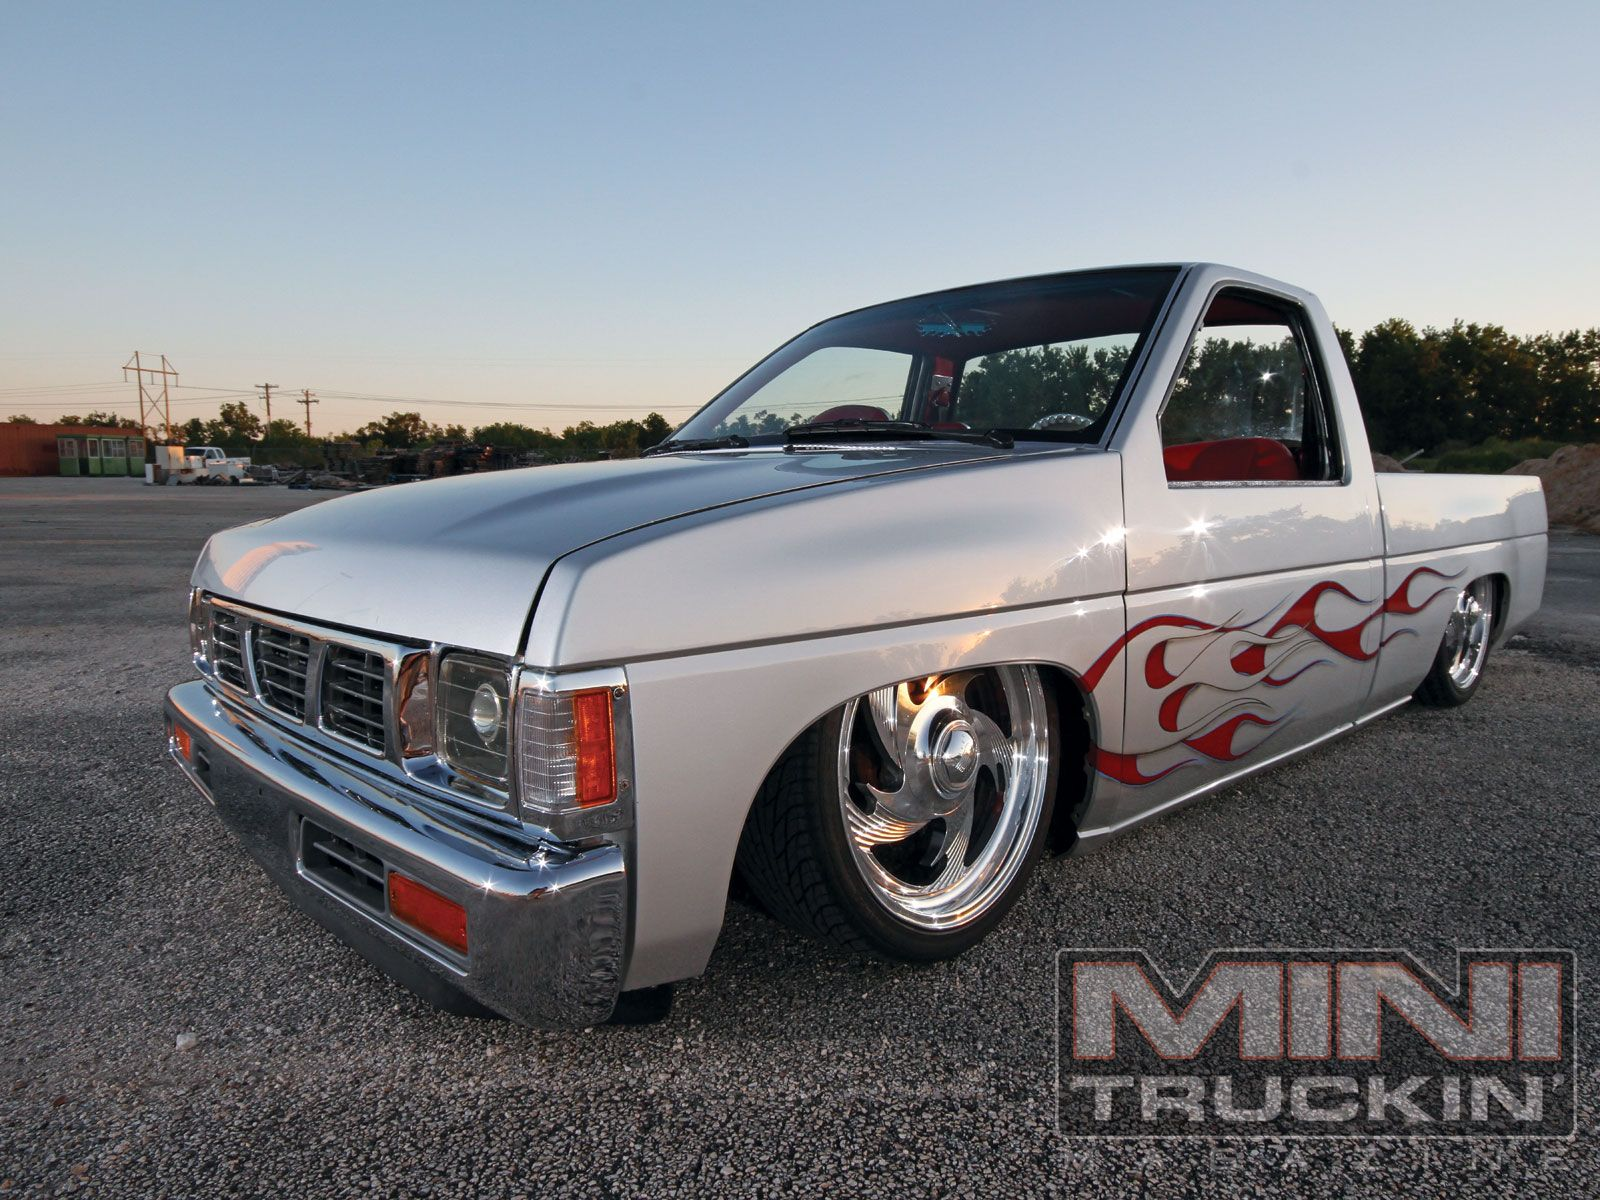 Best 25 nissan hardbody ideas on pinterest mini trucks c10 chevy truck and s14 rocket bunny